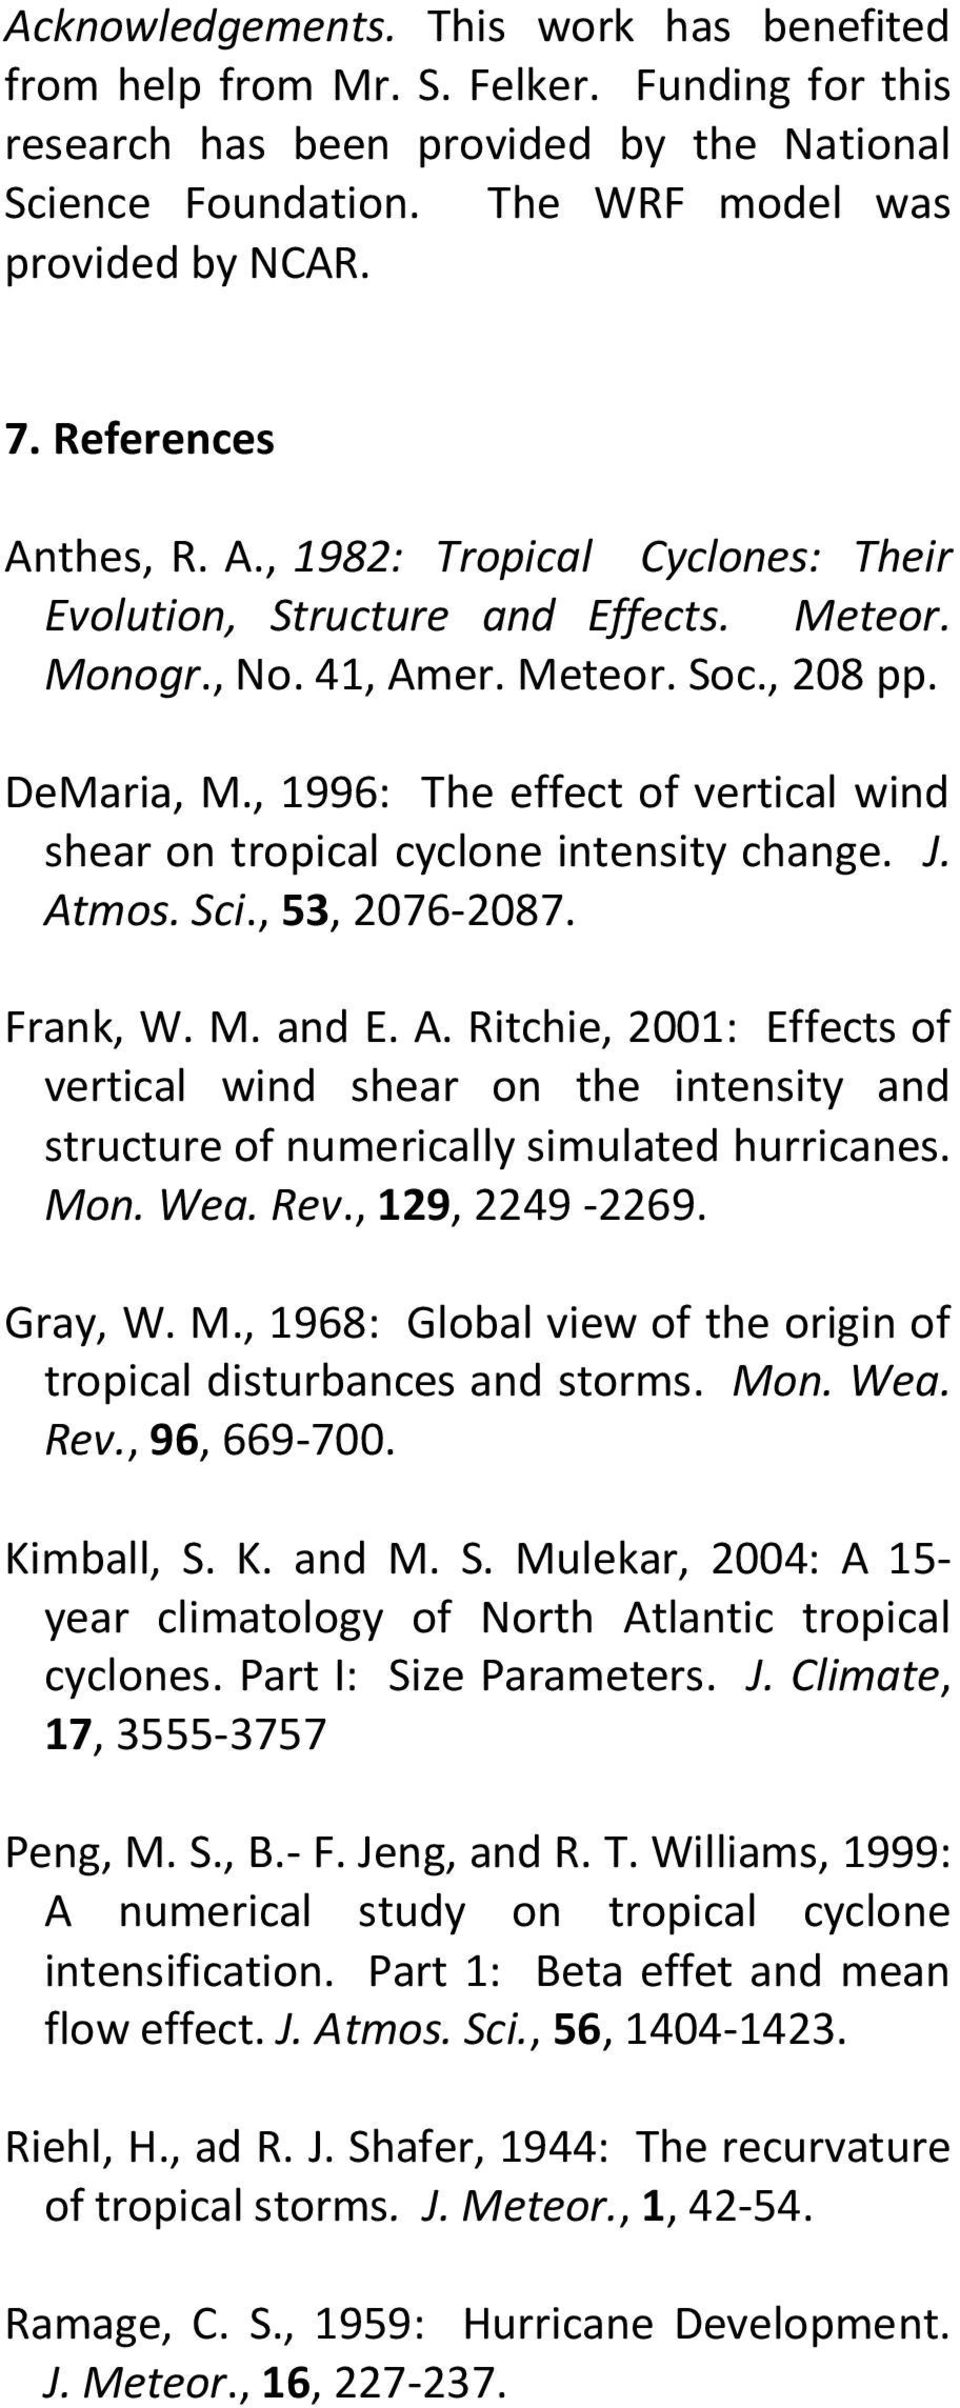 , 1996: The effect of vertical wind shear on tropical cyclone intensity change. J. Atmos. Sci., 53, 2076-2087. Frank, W. M. and E. A. Ritchie, 2001: Effects of vertical wind shear on the intensity and structure of numerically simulated hurricanes.